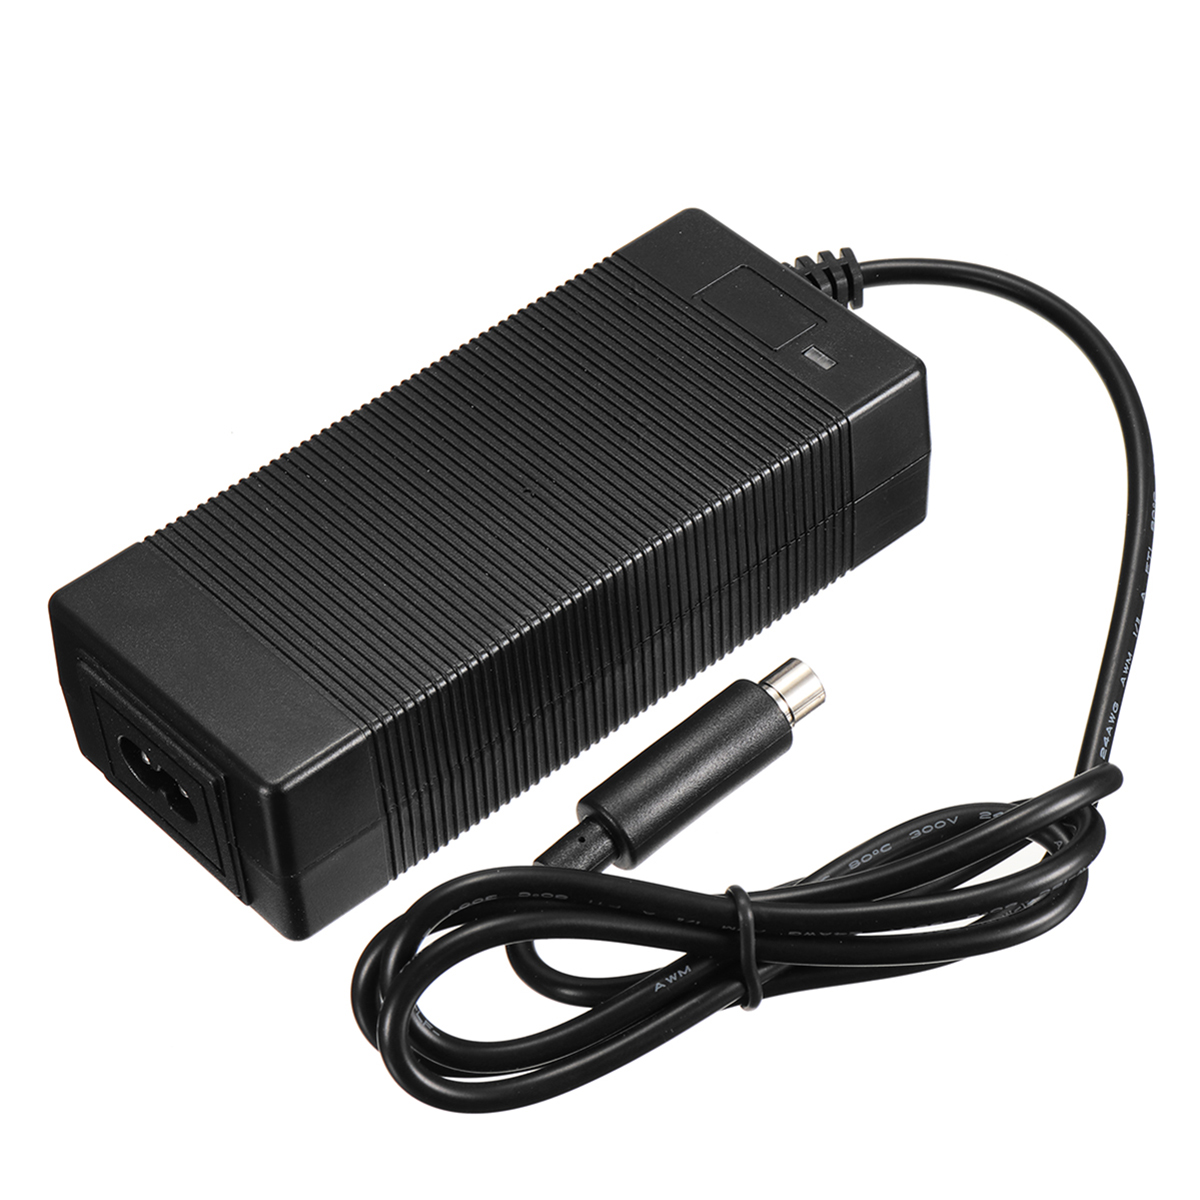 Xiaomi Mijia EU/AU/UK Plug Battery Charger Adapter For M365 Electric Scooter Skateboard